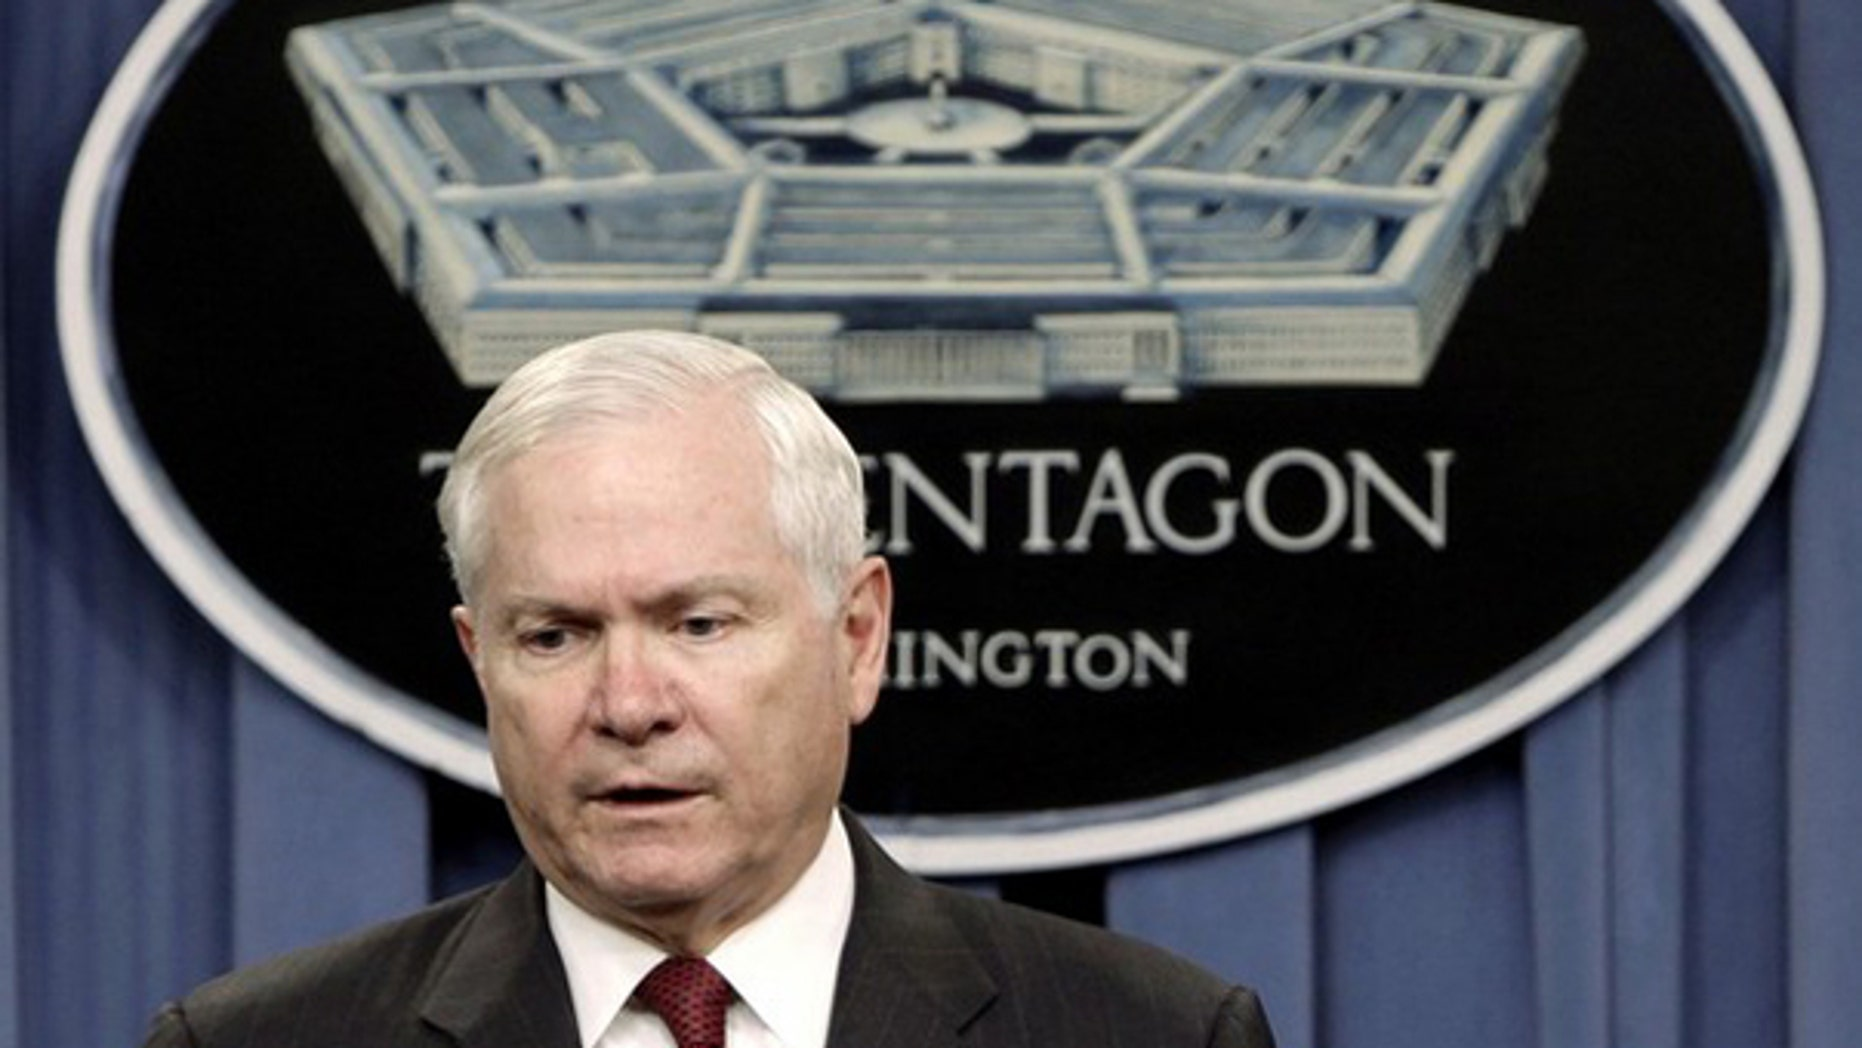 Secretary of Defense Robert Gates speaks at a briefing on the new Nuclear Posture Review at the Pentagon in Washington April 6. (Reuters Photo)